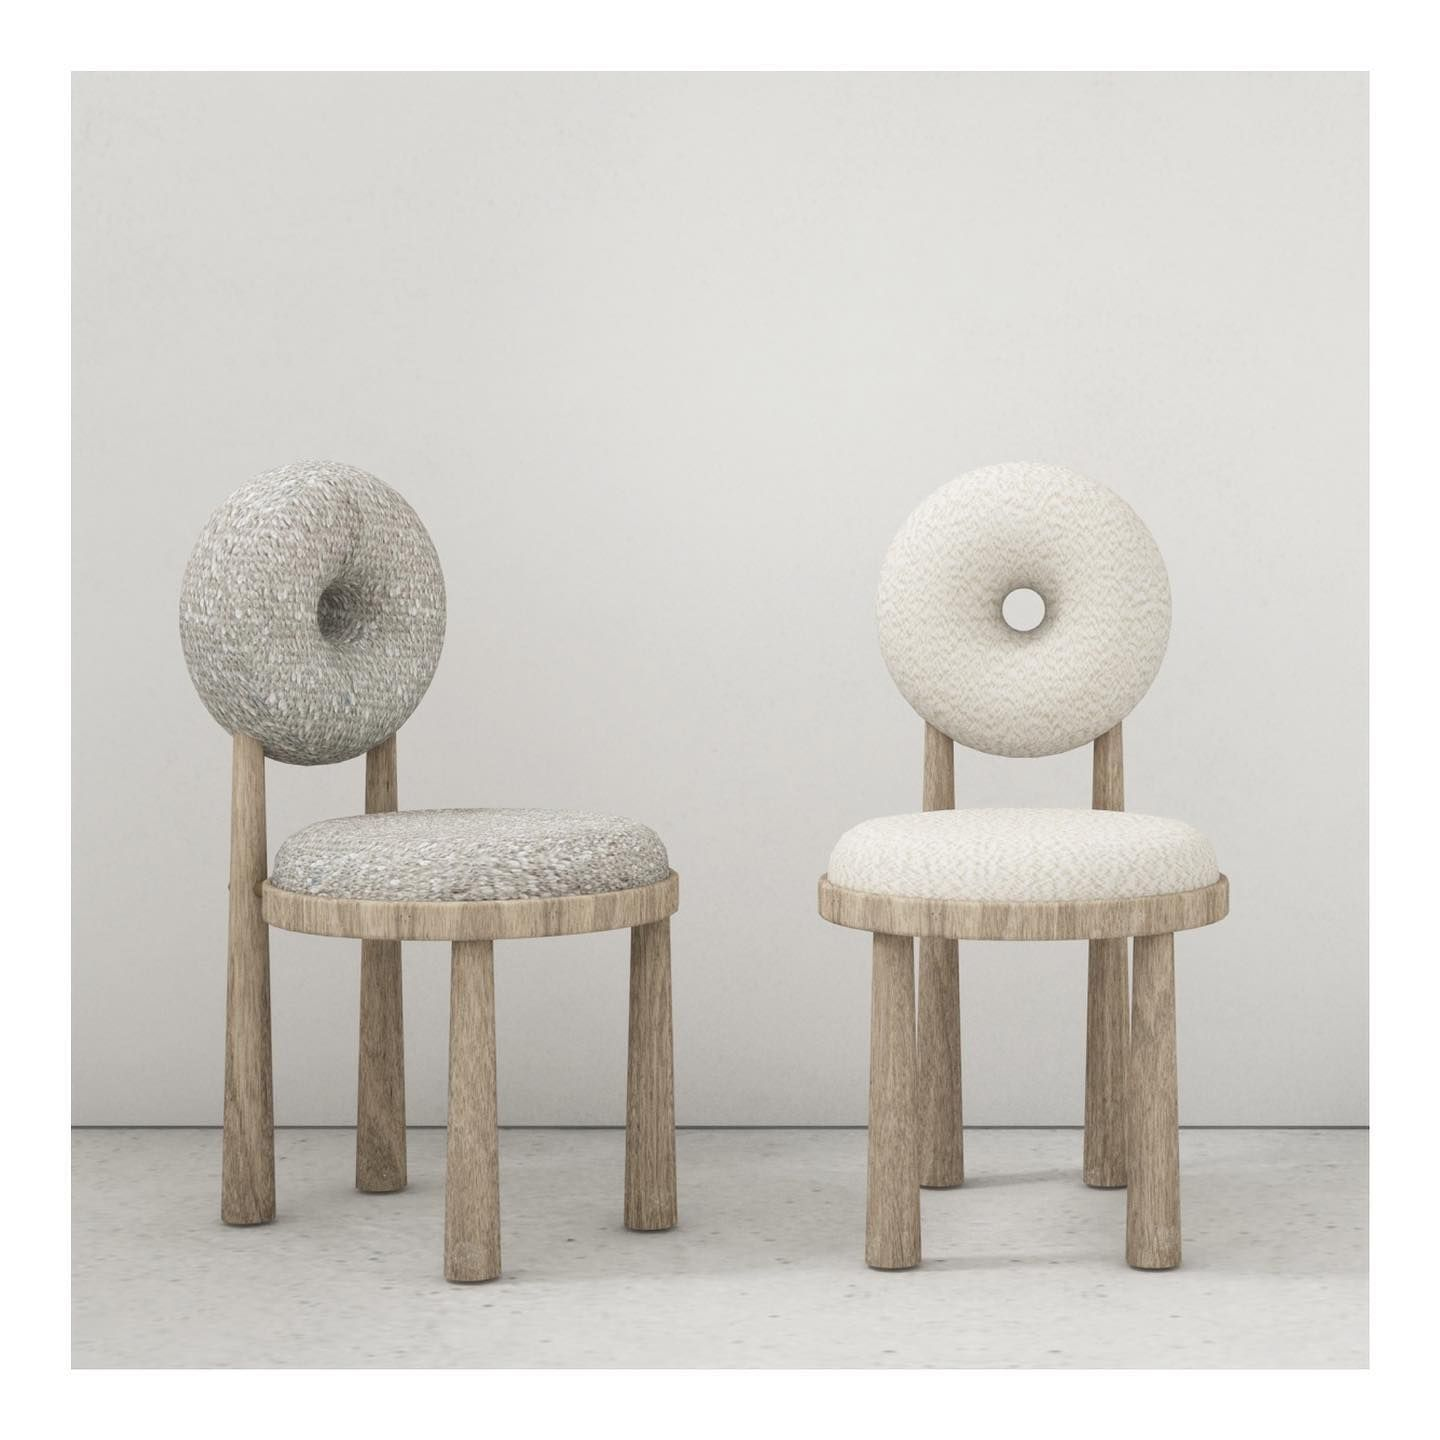 Baba Collection Chairs Designed By Emmanuelle Simon Design Chairs Baba Collection Wood Circle In 2020 Luxury Dining Chair Swivel Dining Chairs Nordic Furniture